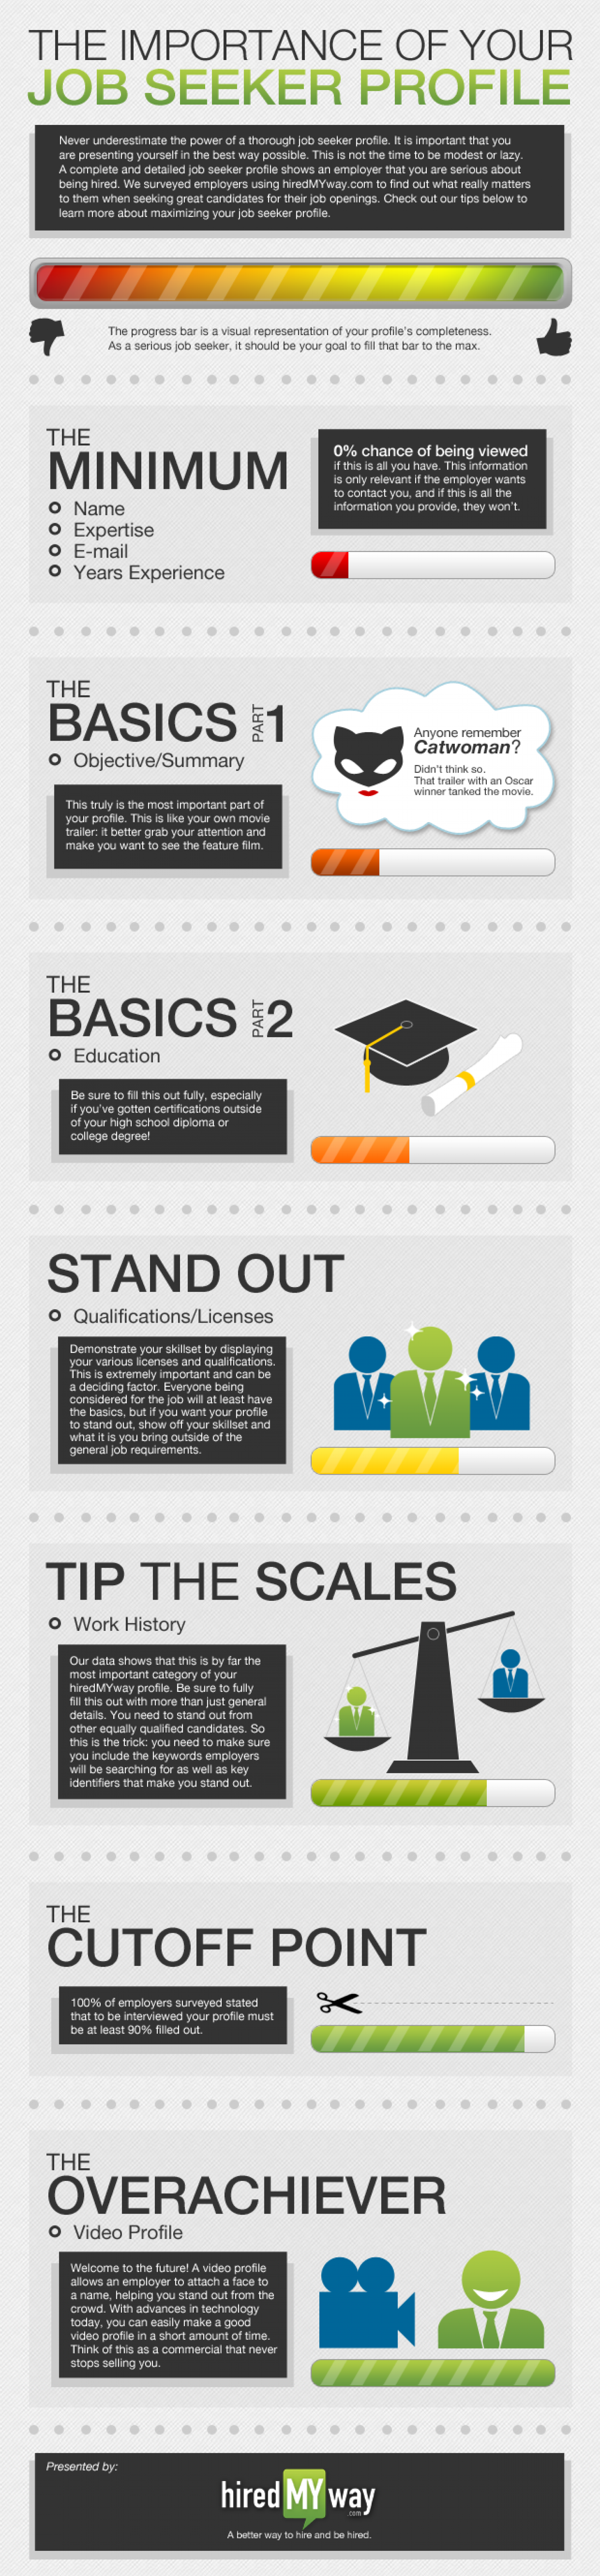 Job Seeker Profile Importance Infographic